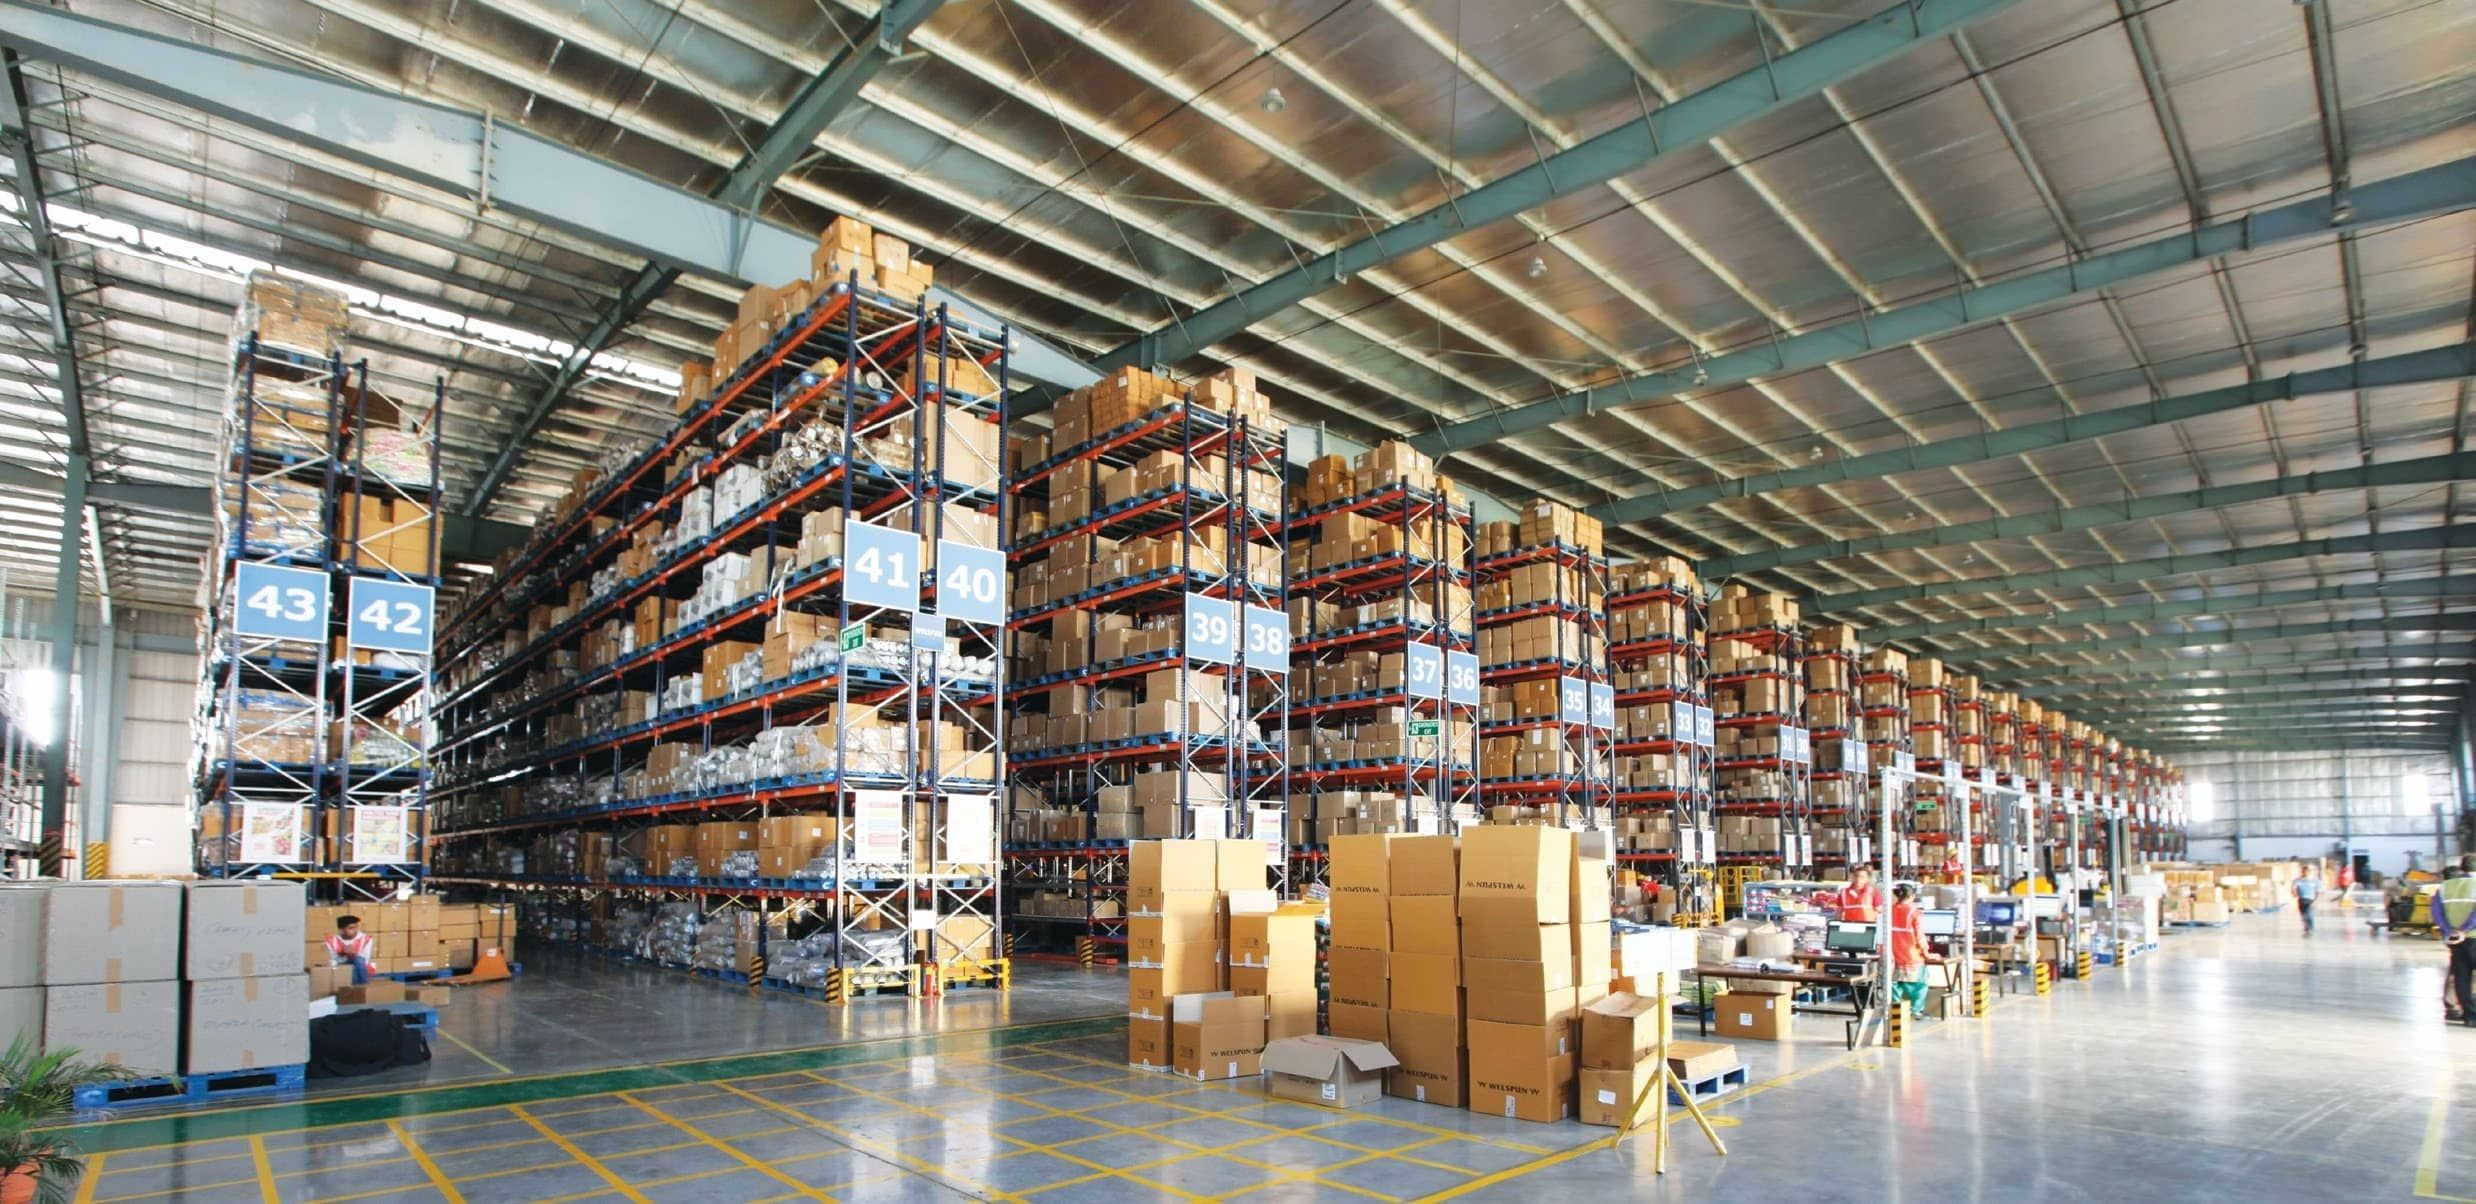 IT Is Key To Warehousing Growth In India